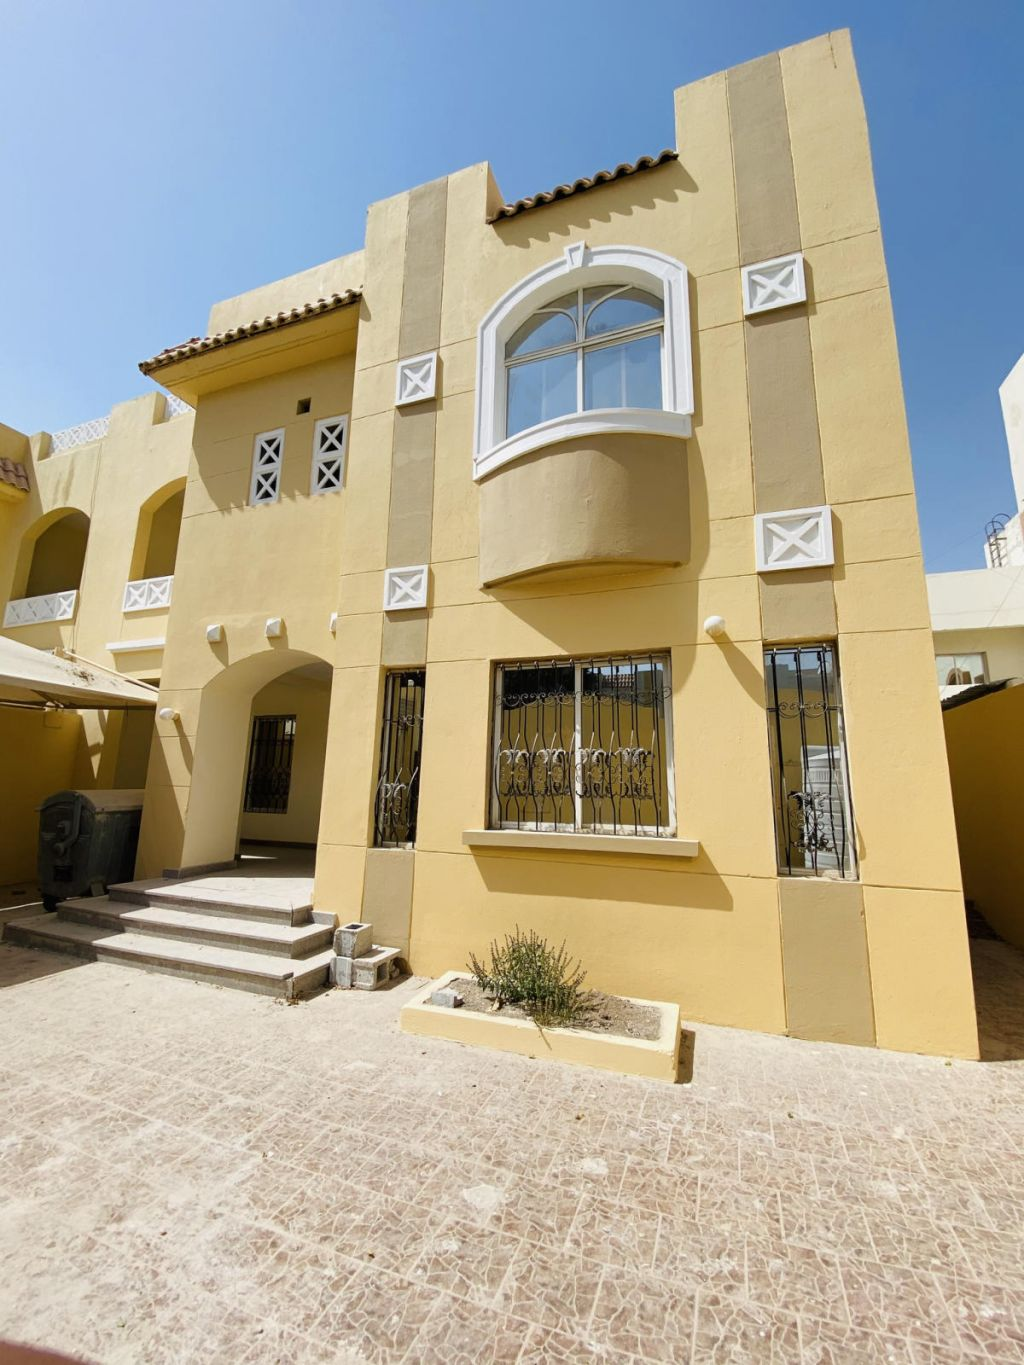 Residential Property 7 Bedrooms U/F Standalone Villa  for rent in Al-Thumama , Doha-Qatar #11205 - 1  image